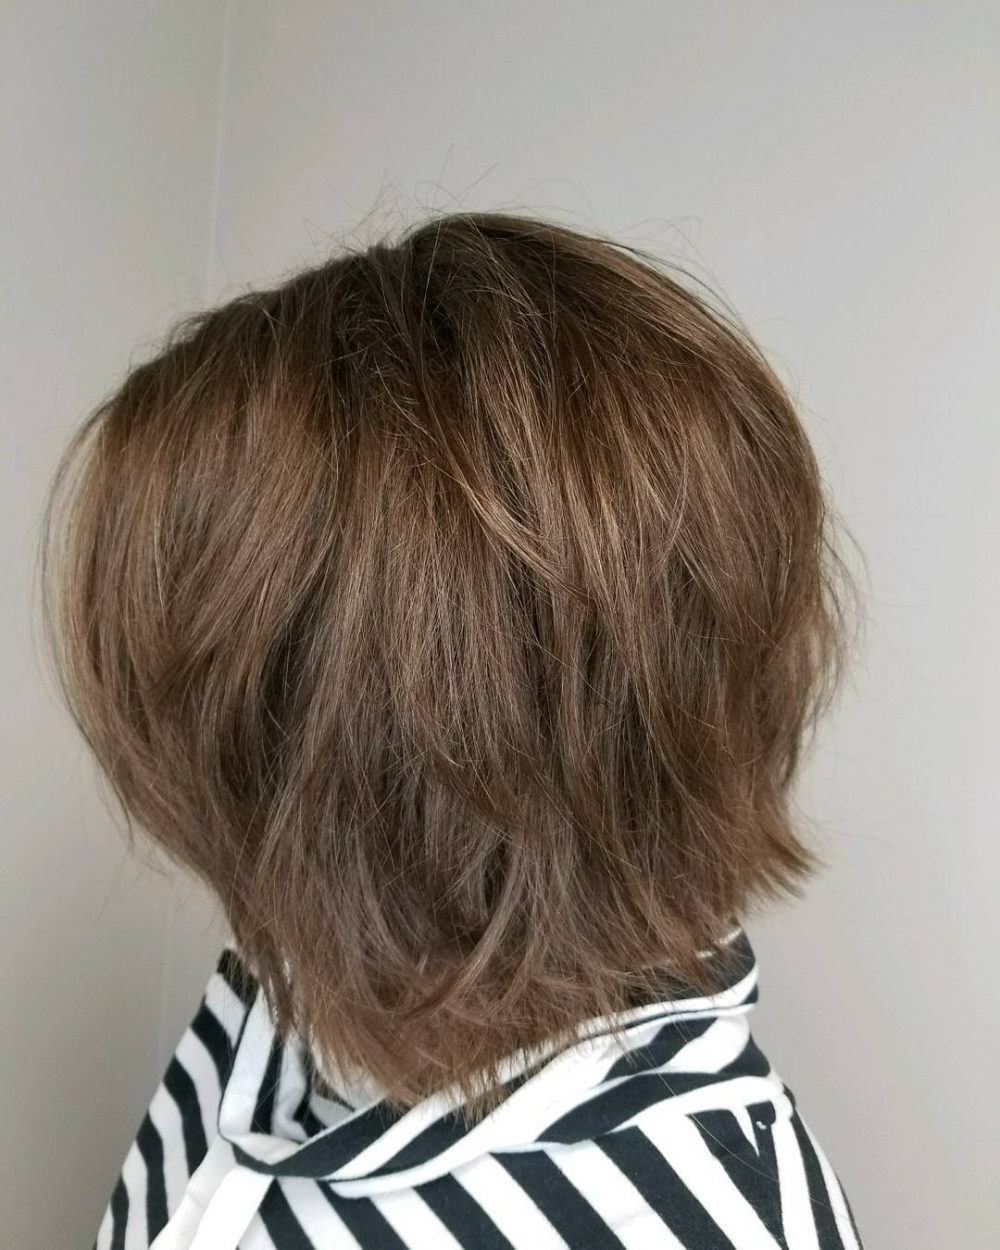 34 Best Choppy Layered Hairstyles (That Will Flatter Anyone) Inside Shoulder Length Choppy Hairstyles (View 6 of 20)